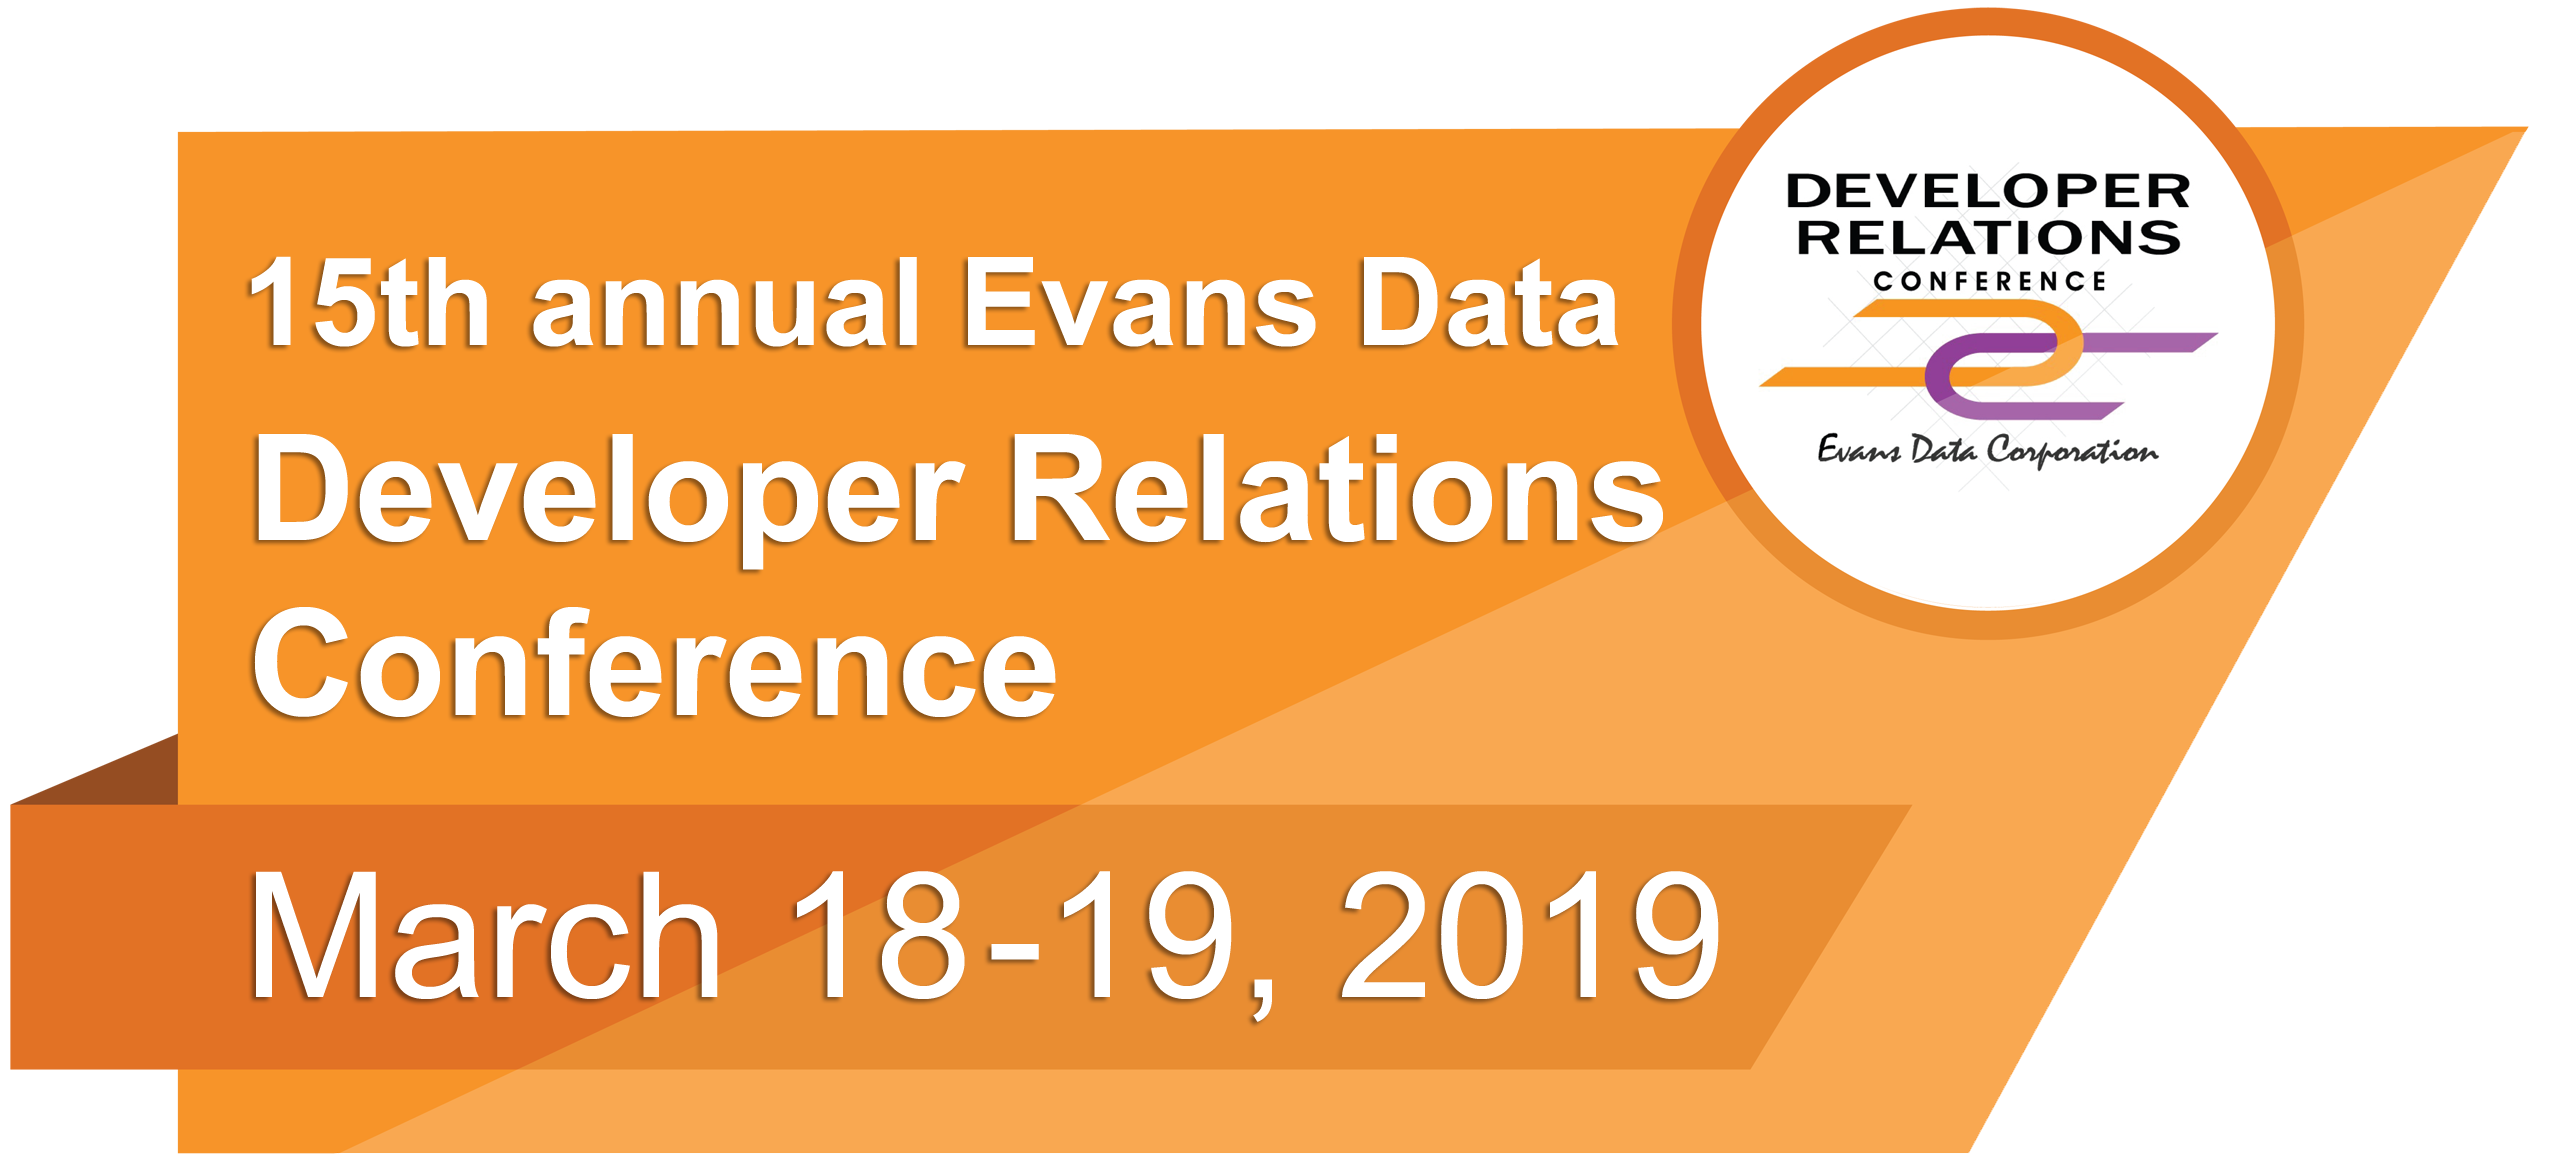 Developer Relations Conference